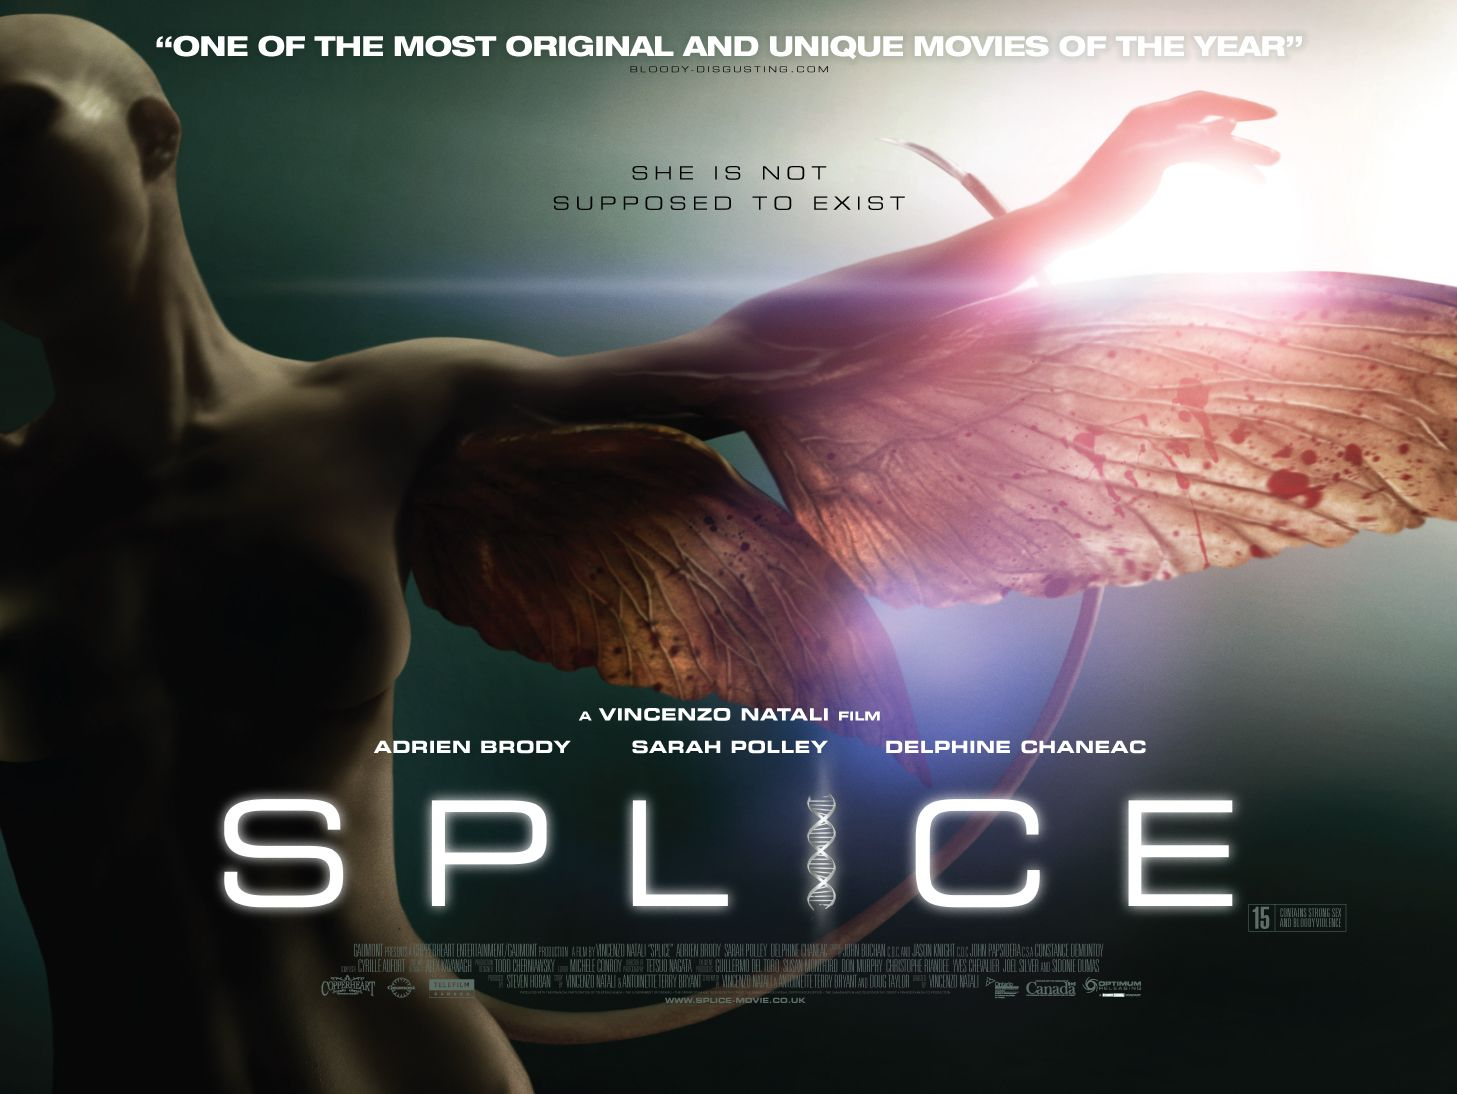 Movie Posters 2009: Exhale: Movie Review (Yay): Splice (2009